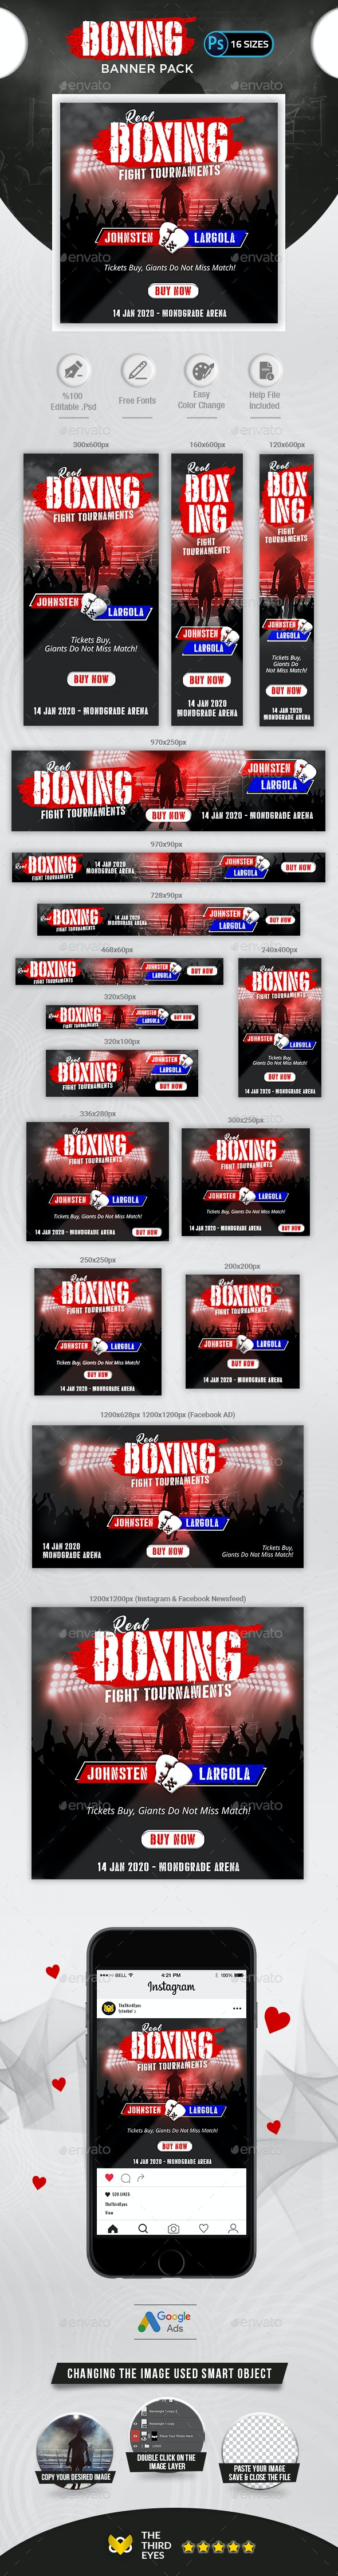 Boxing Banner Pack - Banners & Ads Web Elements